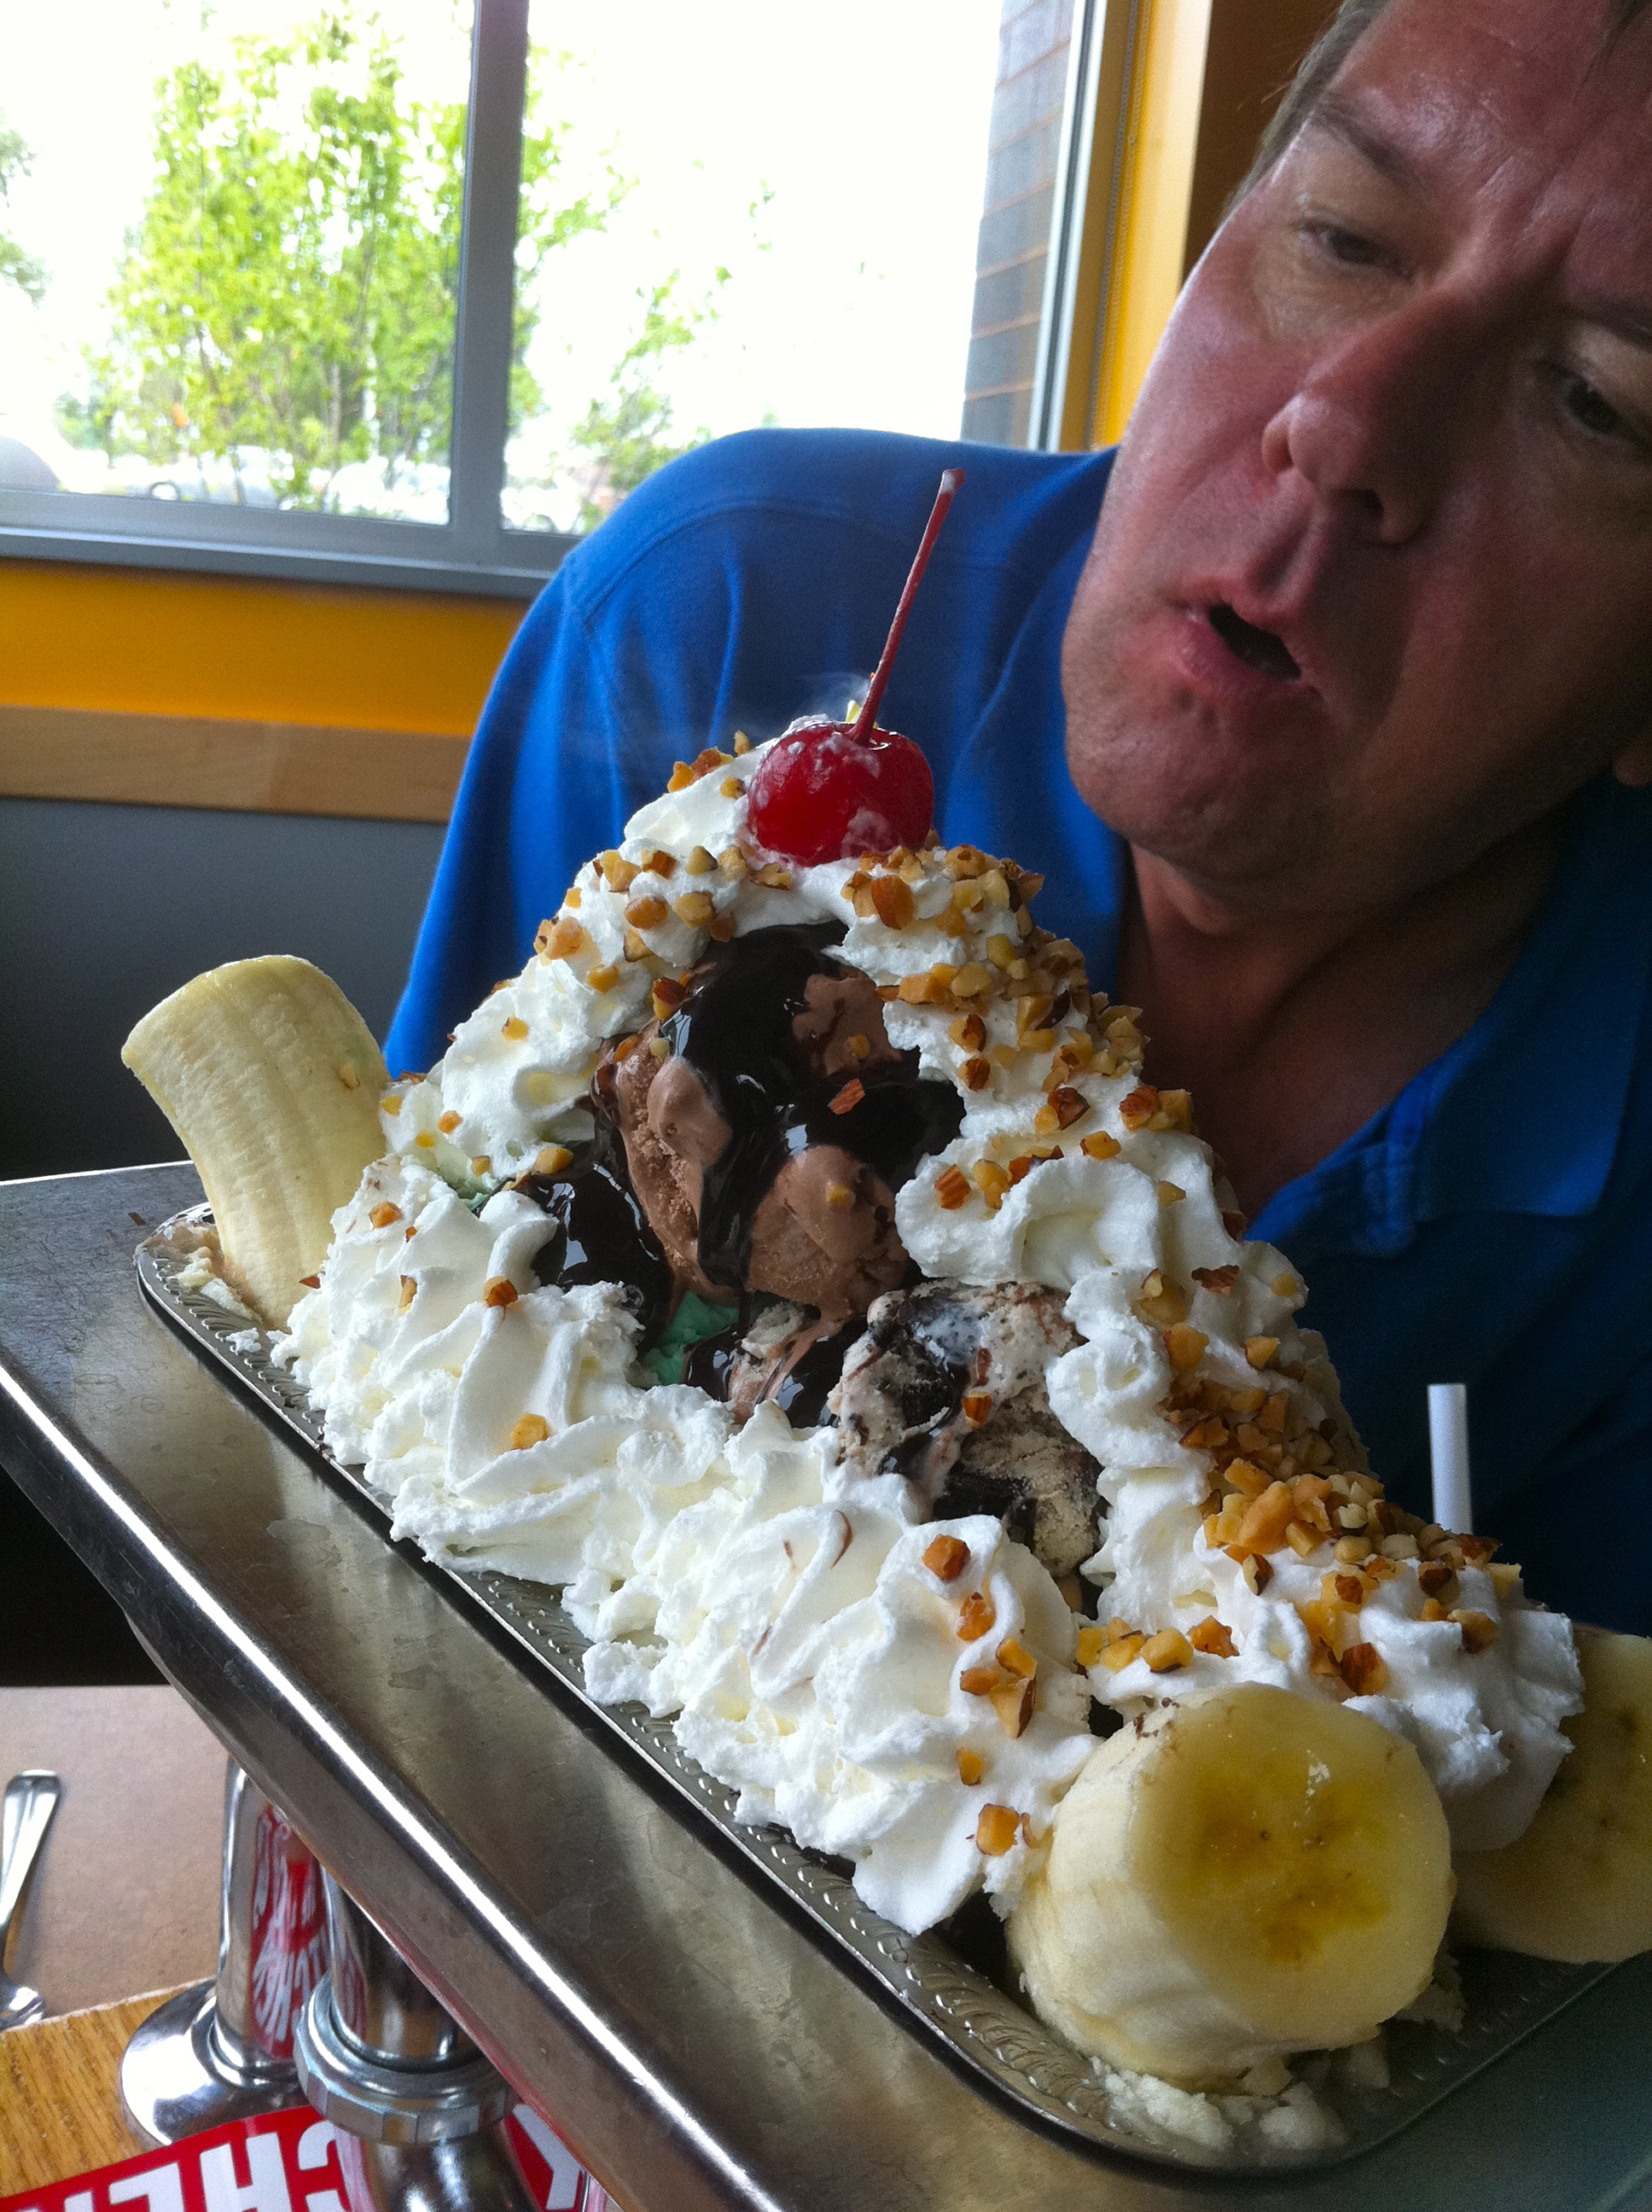 Colonial Cafe and Ice Cream in Crystal Lake Kitchen Sink Sundae